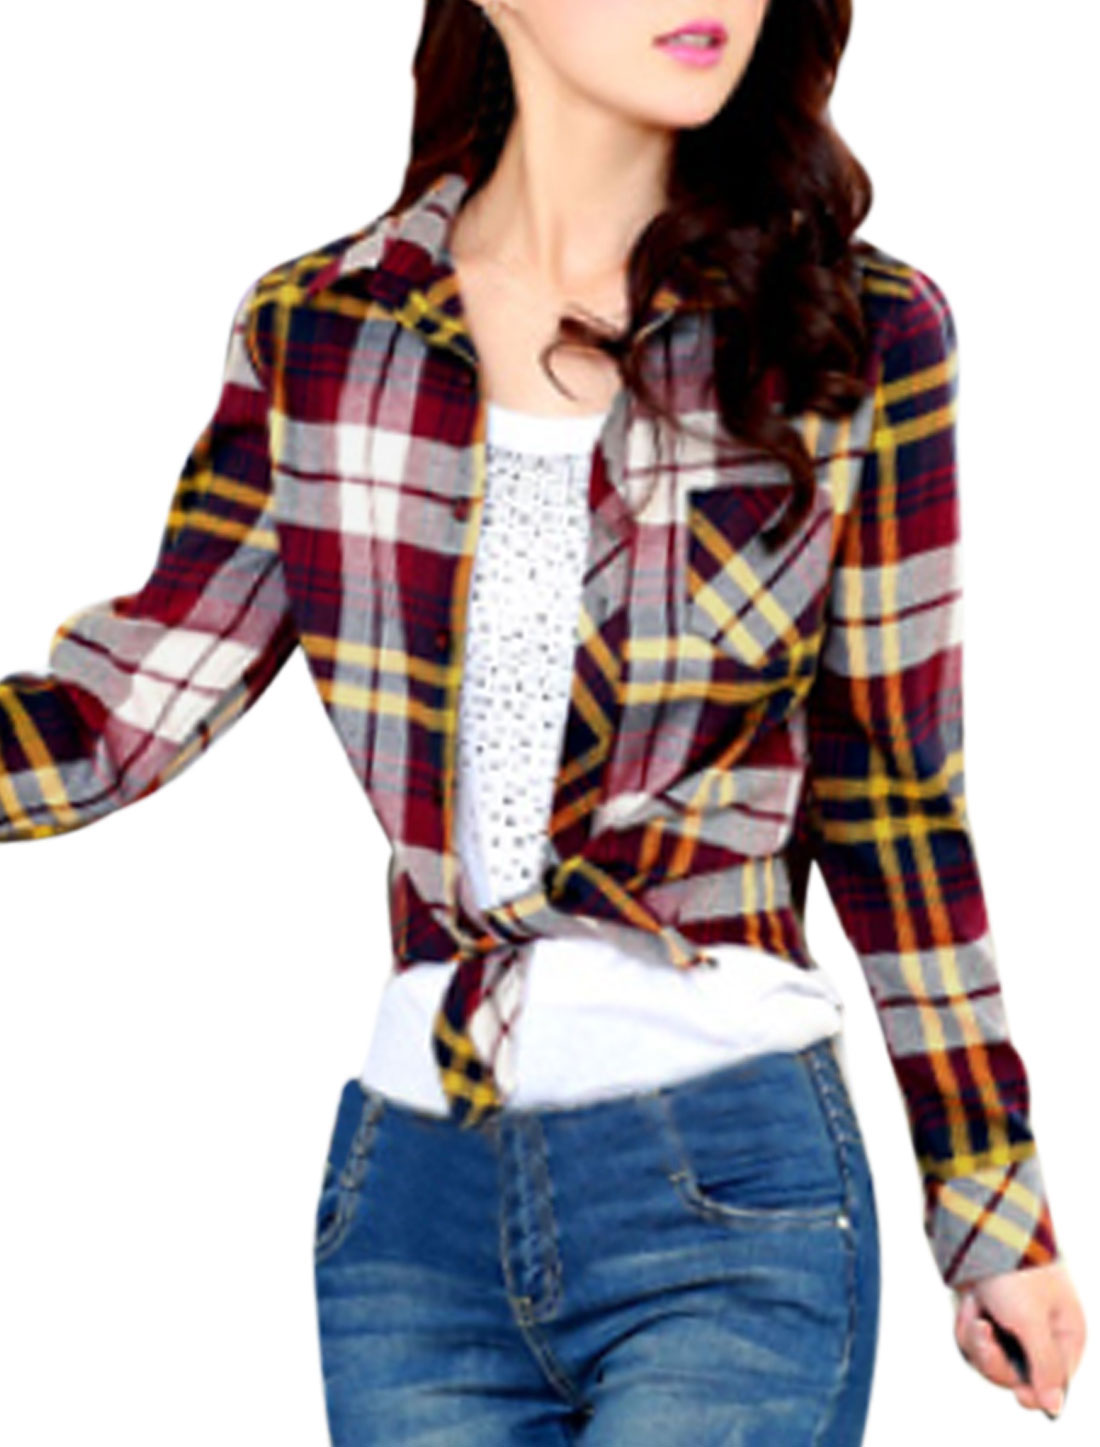 Women Plaids Pattern Single Breasted One Bust Pocket Shirt Burgundy Beige M